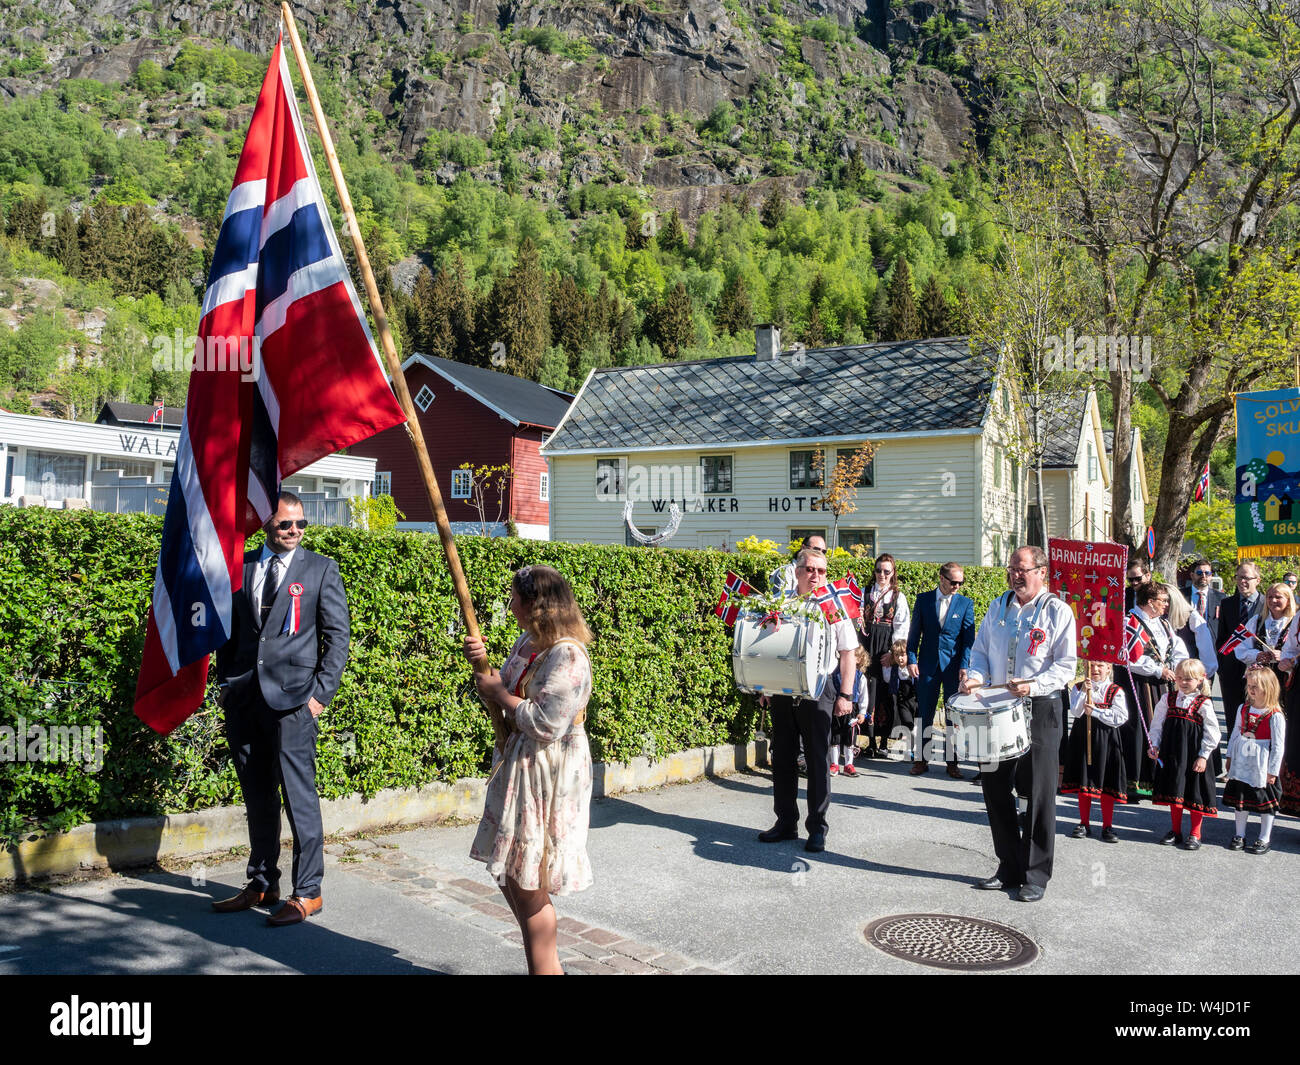 8e1e6c8d4a8be Norway Traditional Clothing Stock Photos & Norway Traditional ...